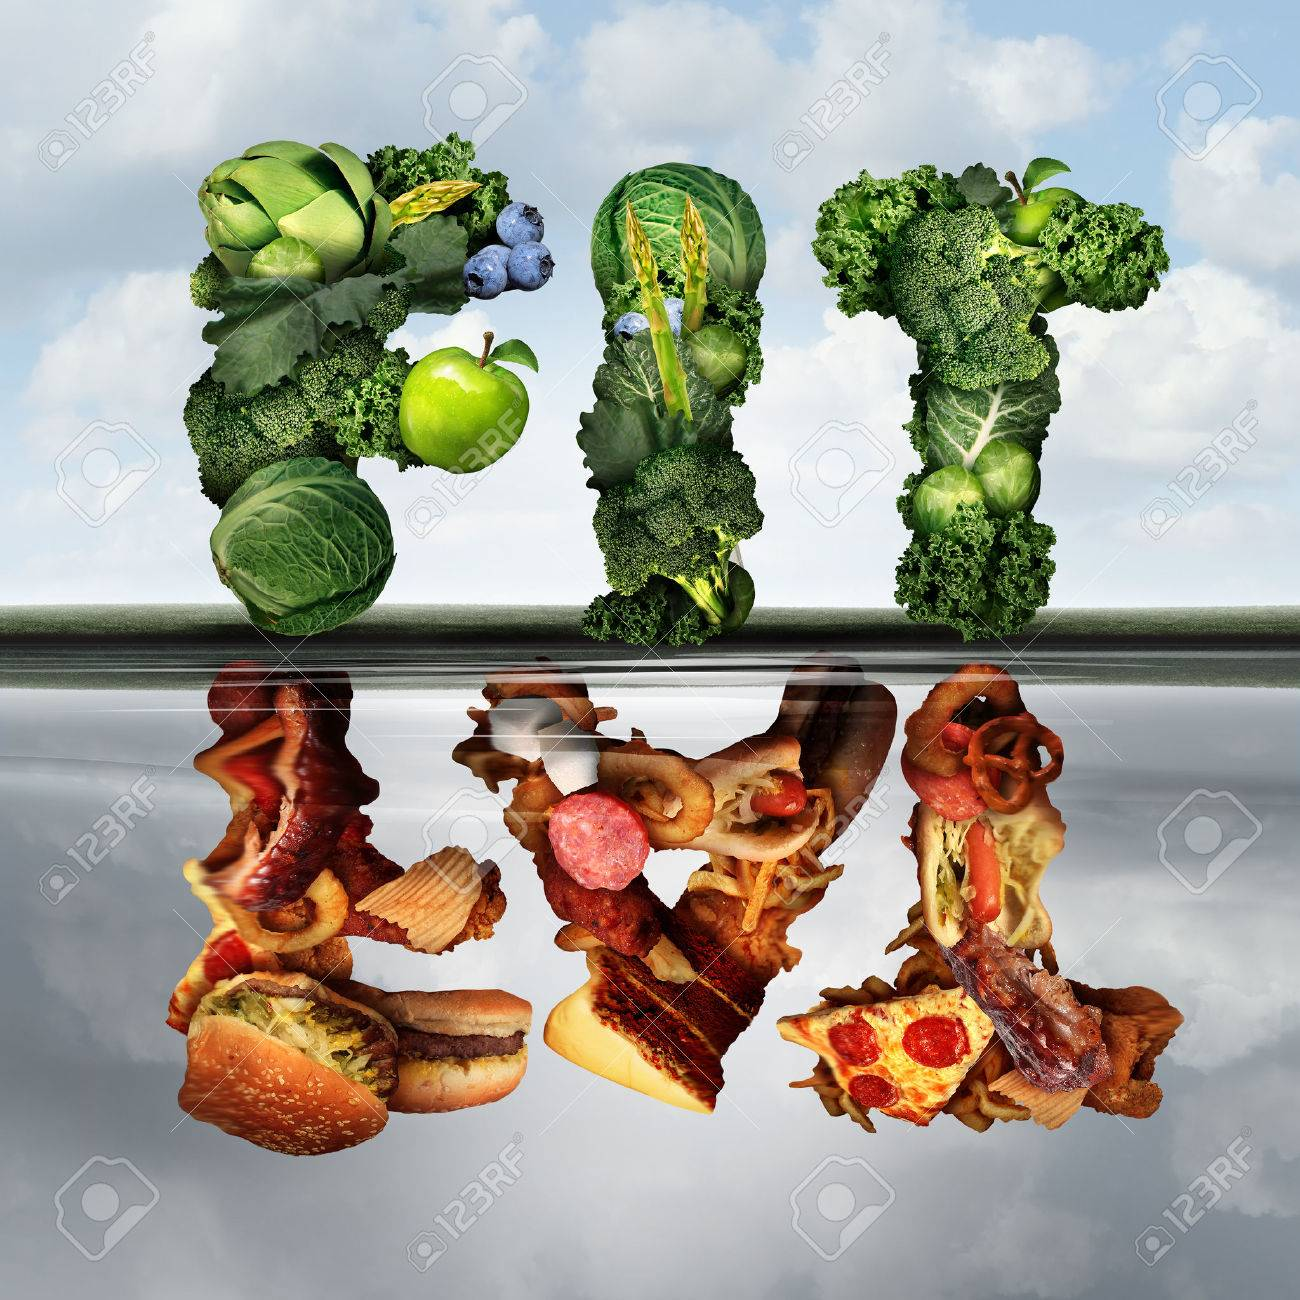 Eating lifestyle change concept fat or fit as a group healthy green fruits and vegetables reflecting greasy unhealthy food  as an icon for diabetes or diabetic diets with 3D illustration elements. Stock Photo - 55630160